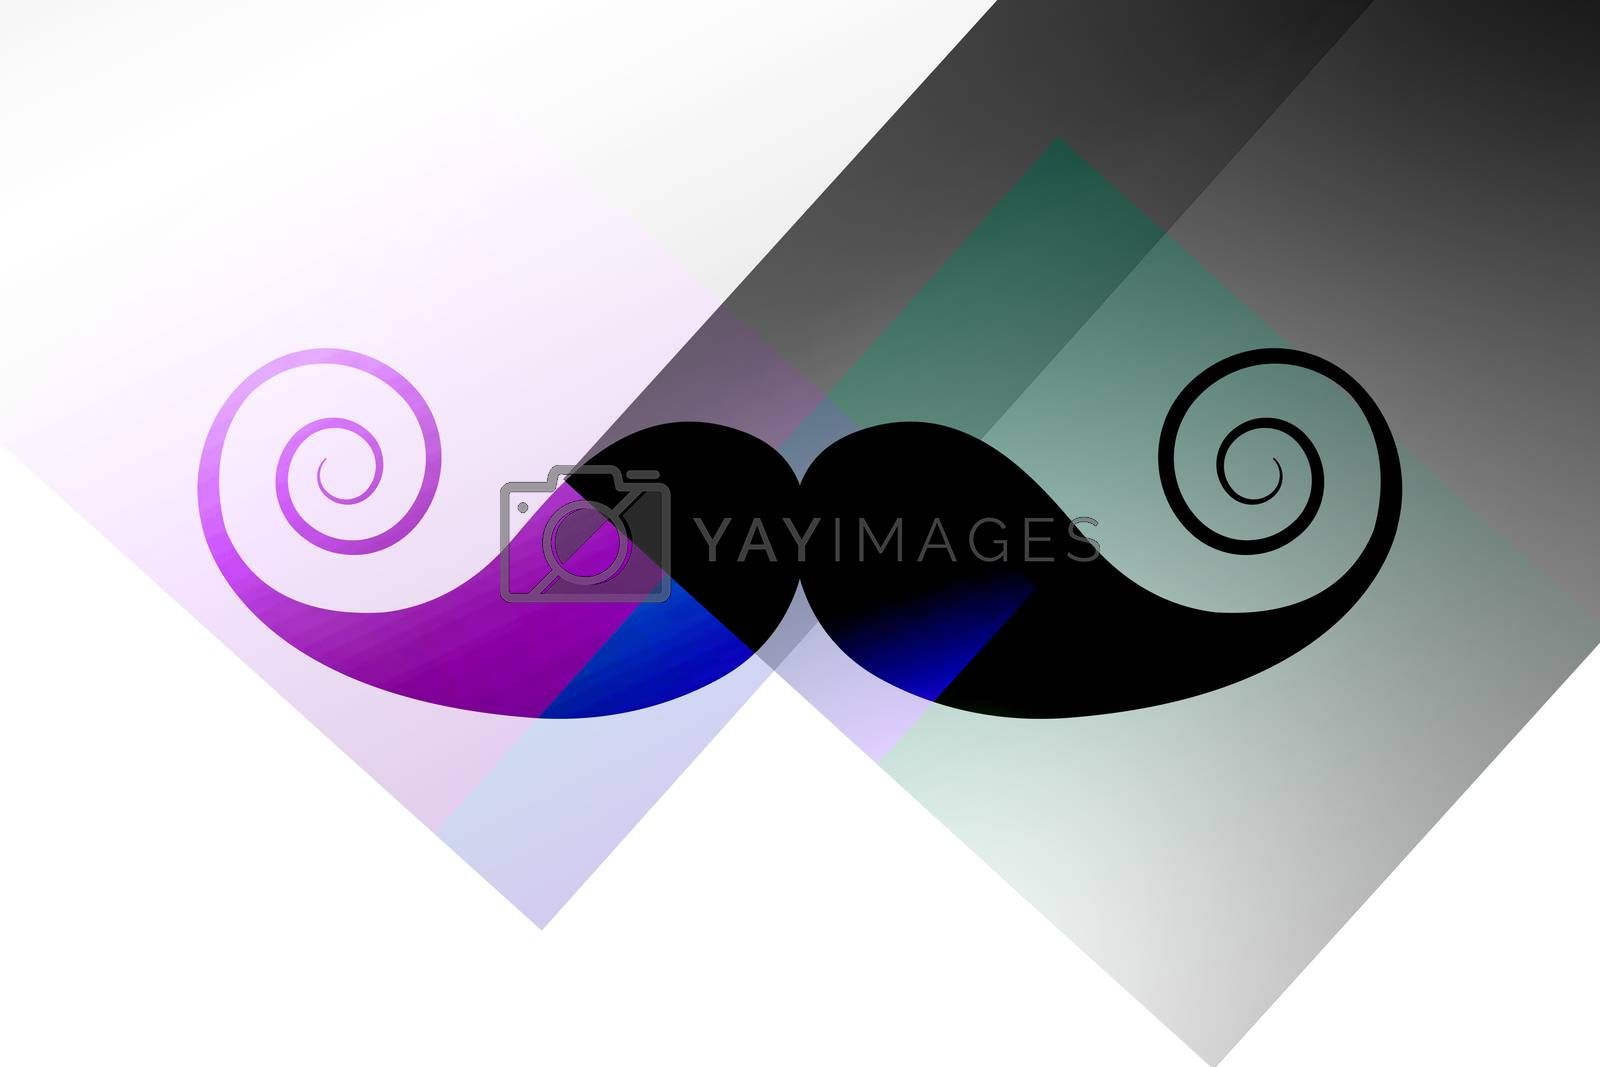 Mustache logo against colored background